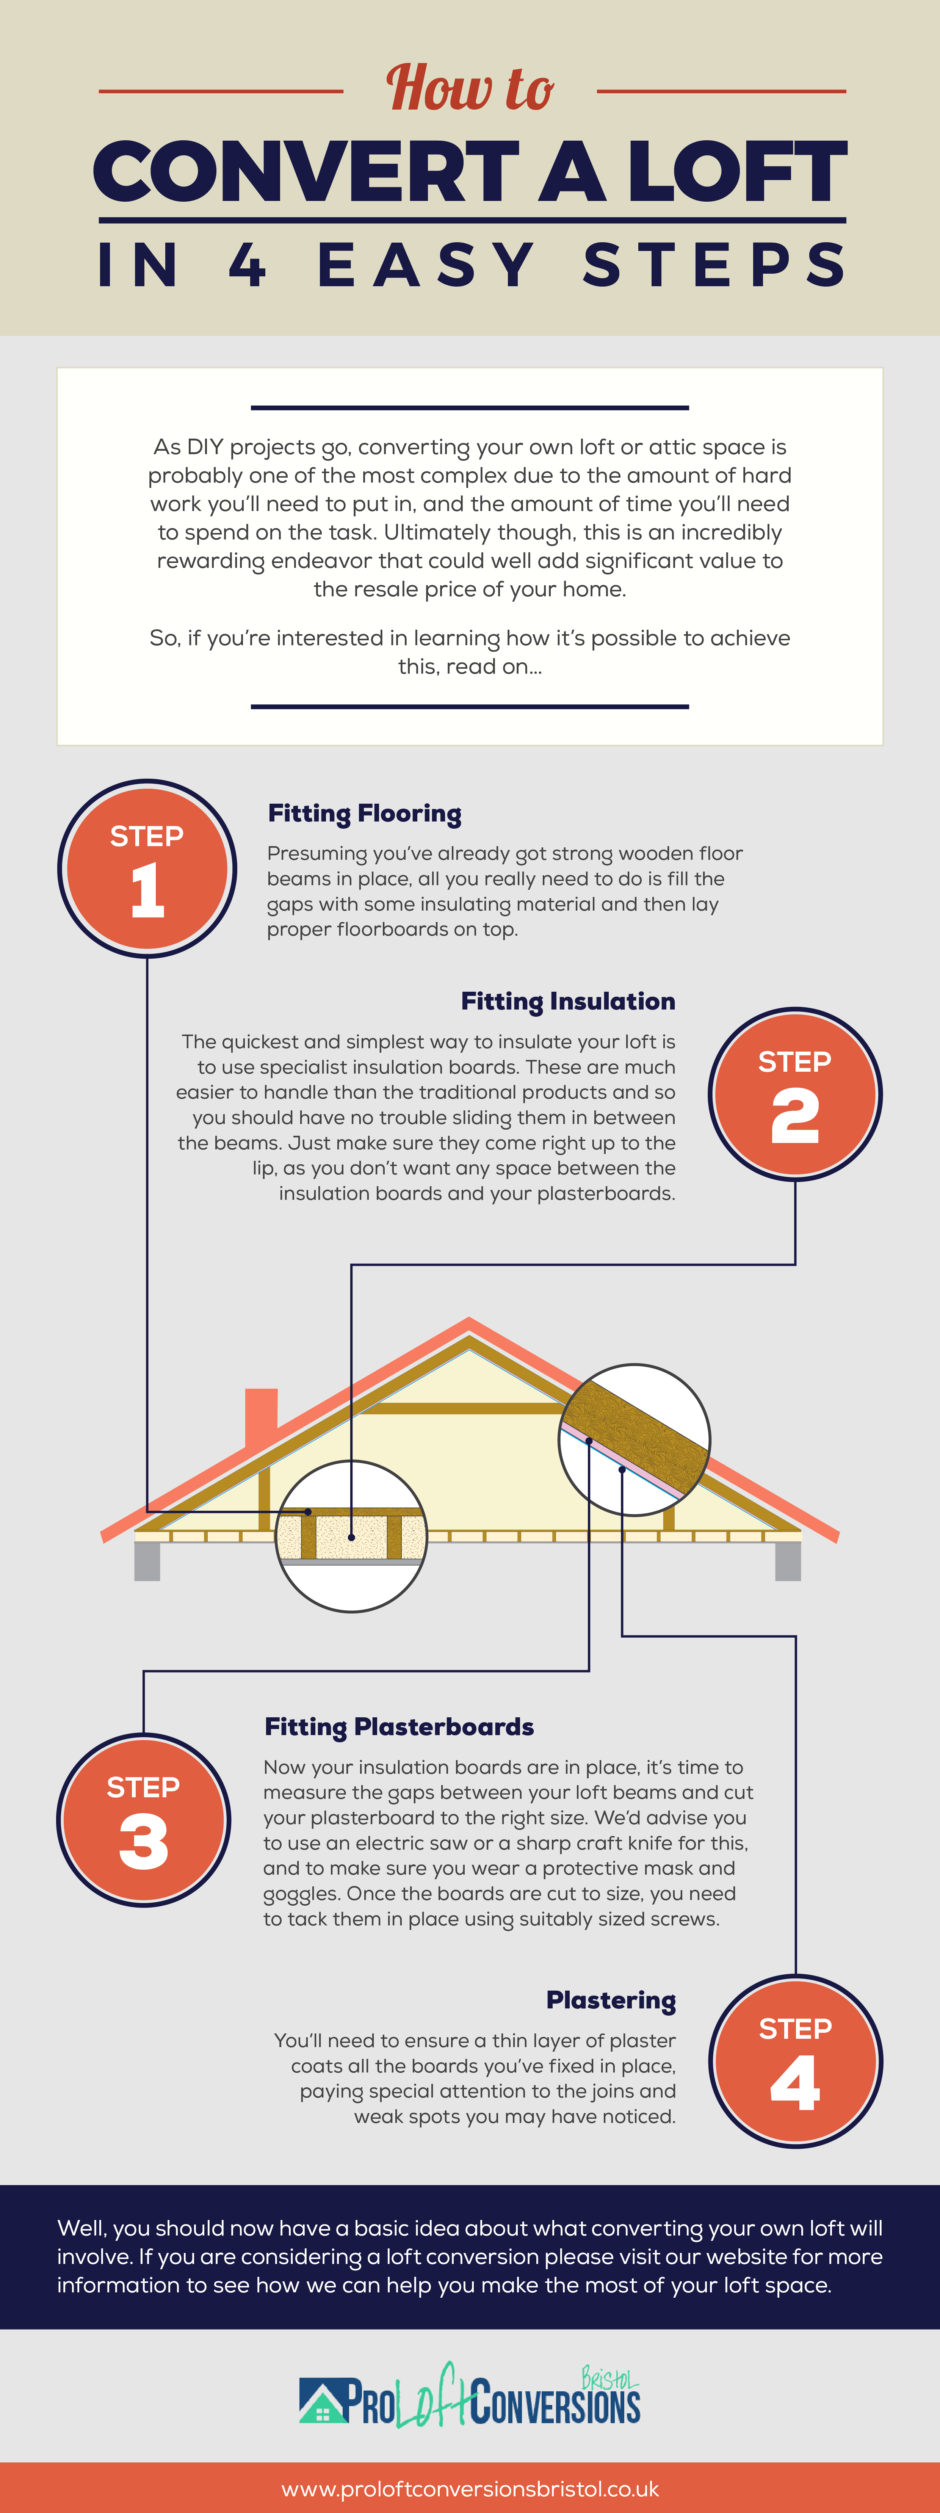 How to Convert A Loft In 4 Easy Steps